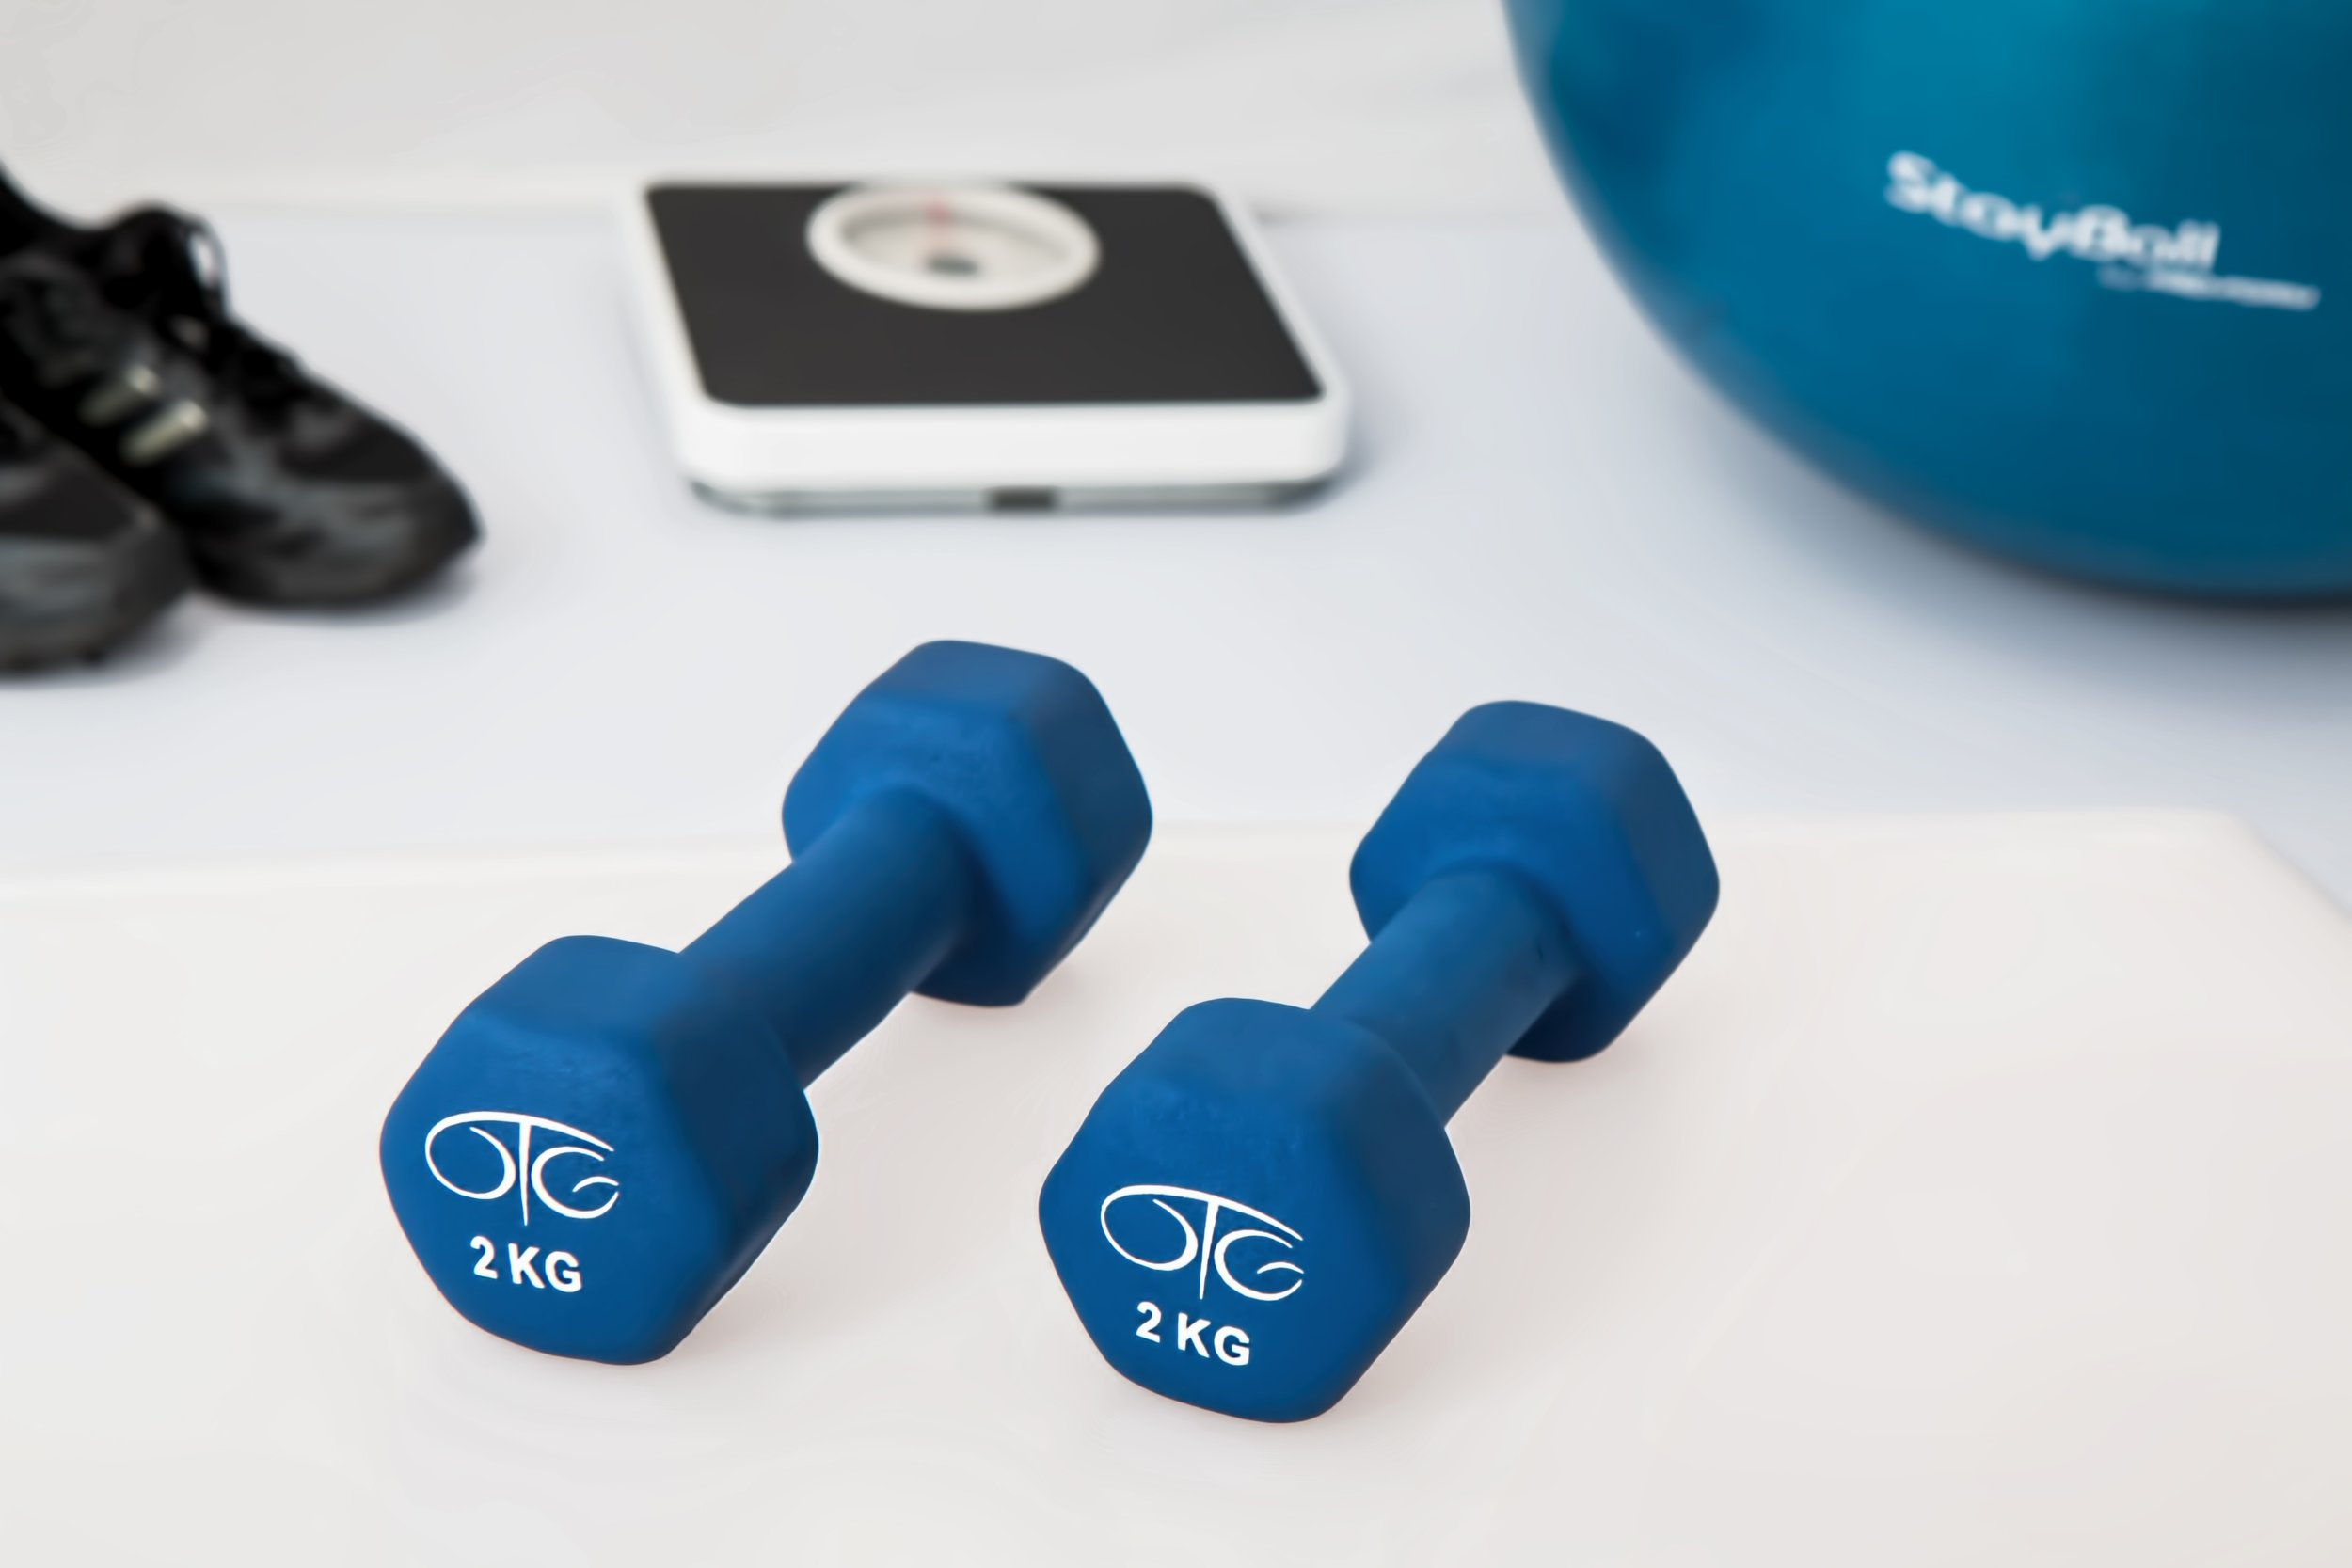 physiotherapy-weight-training-dumbbell-exercise-balls-39671.jpg